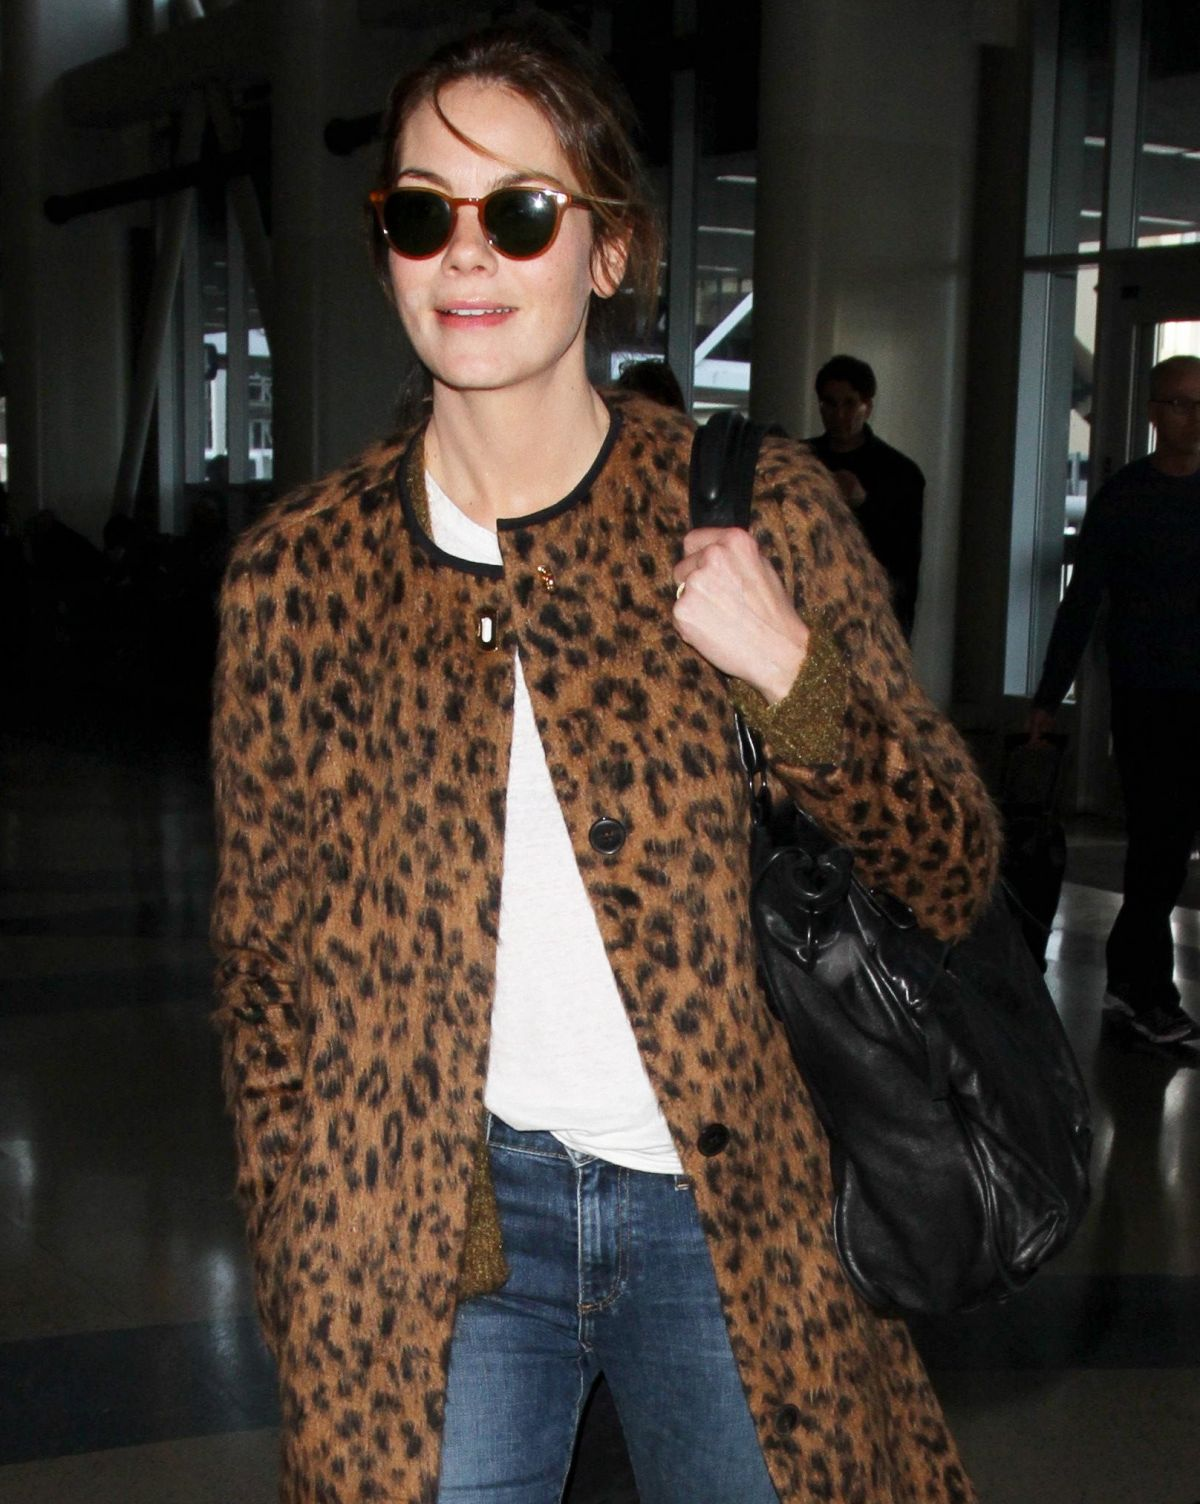 MICHELLE MONAGHAN at LAX Airport in Los Angeles 01/11/2016